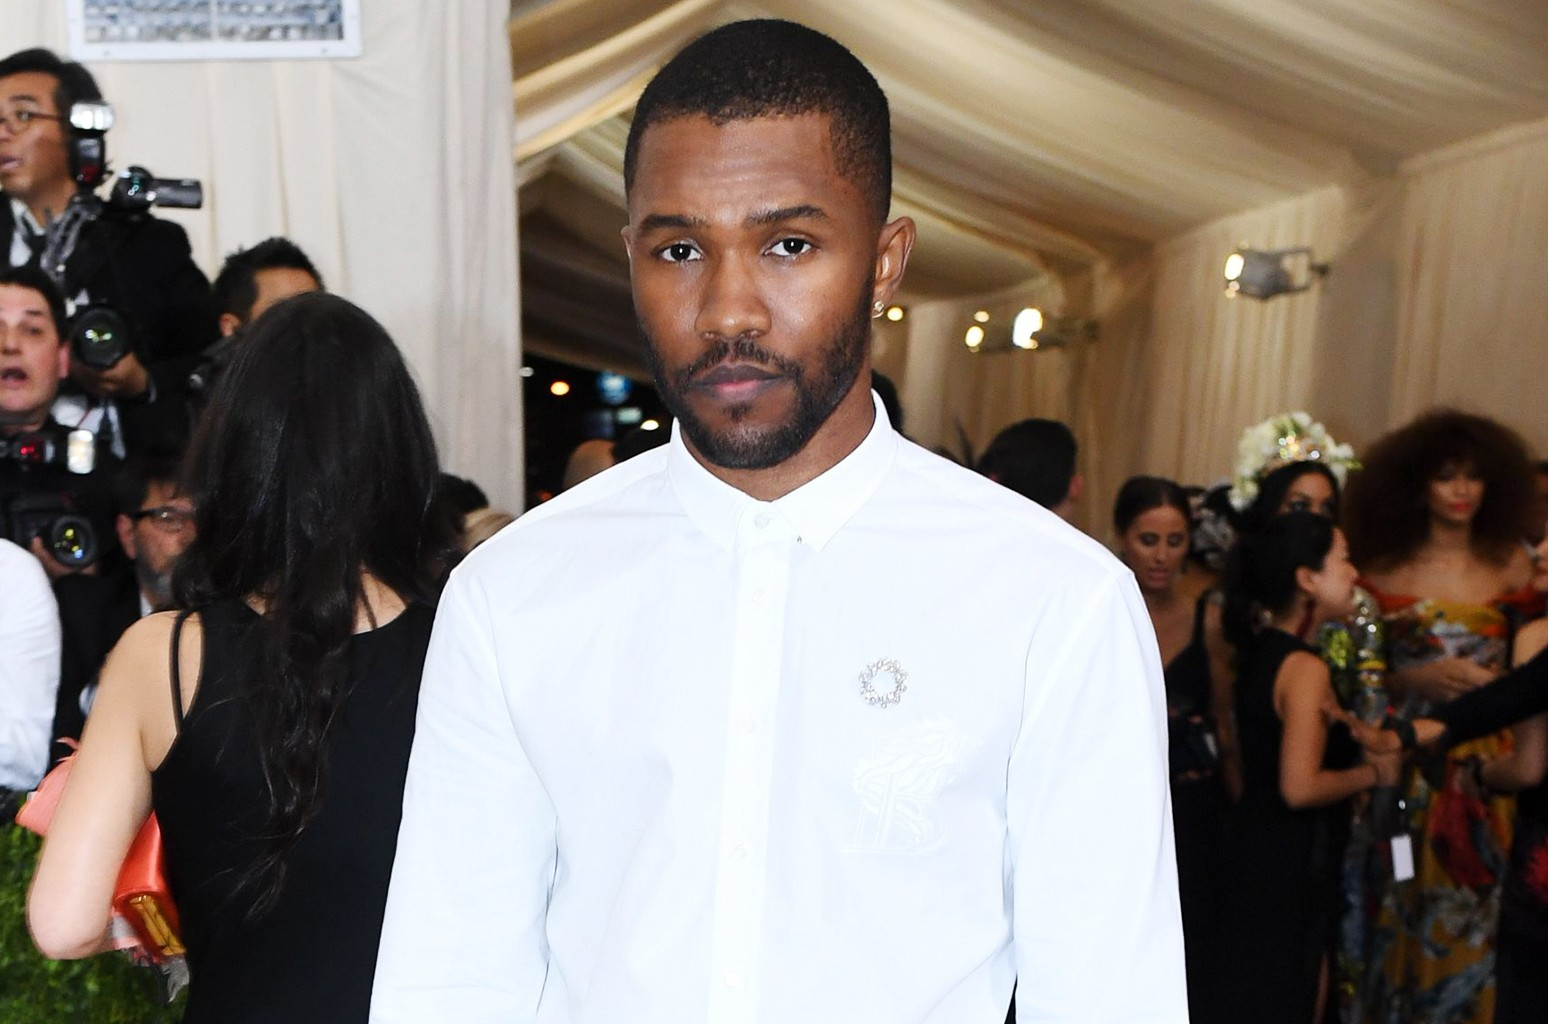 Frank Ocean arrives at the the Costume Institute Benefit celebrating the opening of Rei Kawakubo/Comme des Garcons: Art of the In-Between at The Metropolitan Museum of Art in New York City on May 1, 2017.